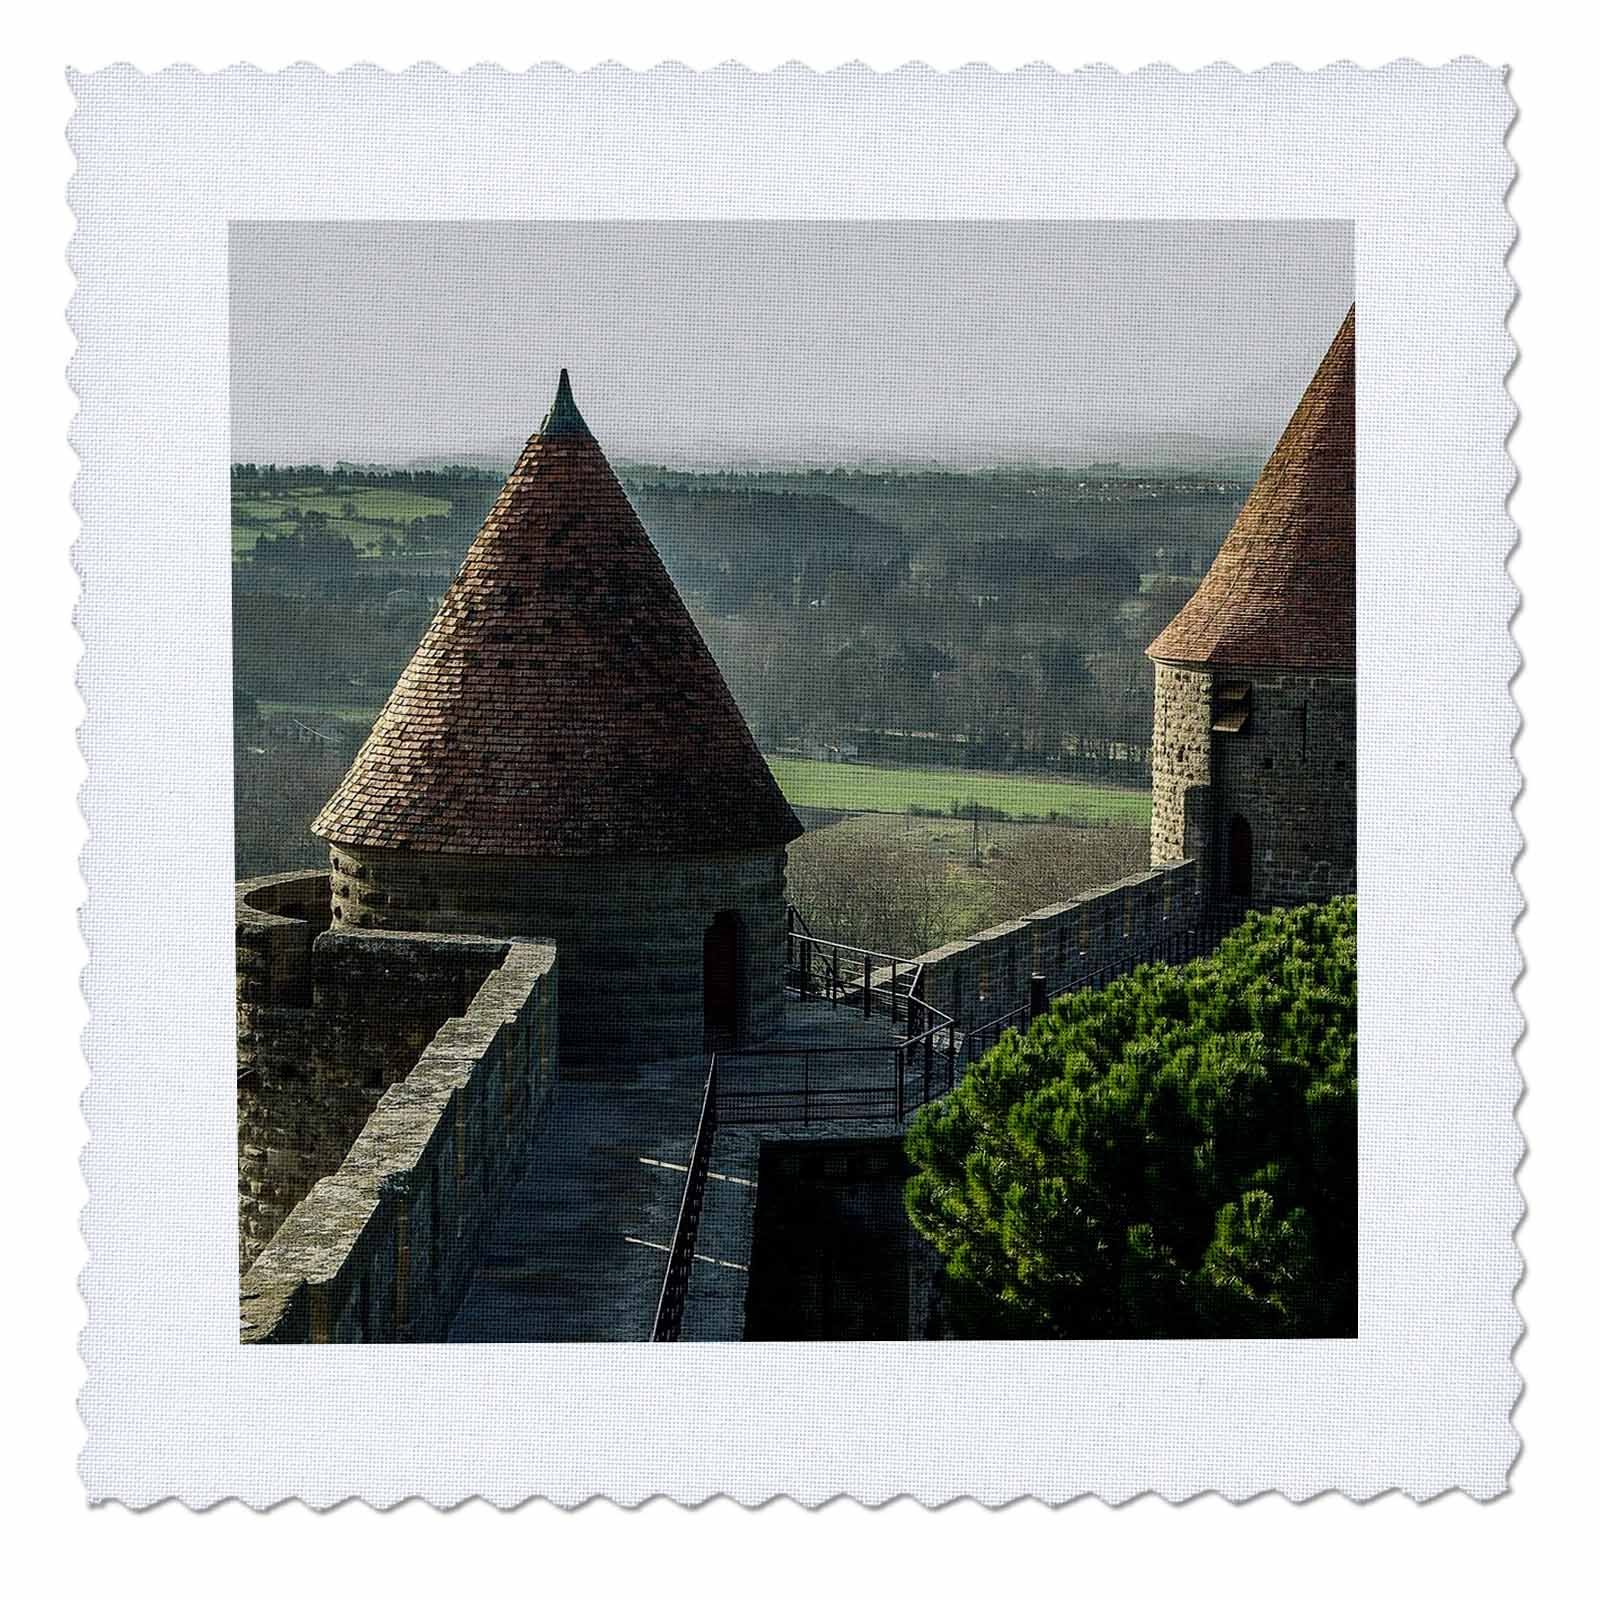 3dRose Cities Of The World - City Of Carcassonne, France - 18x18 inch quilt square (qs_268626_7)